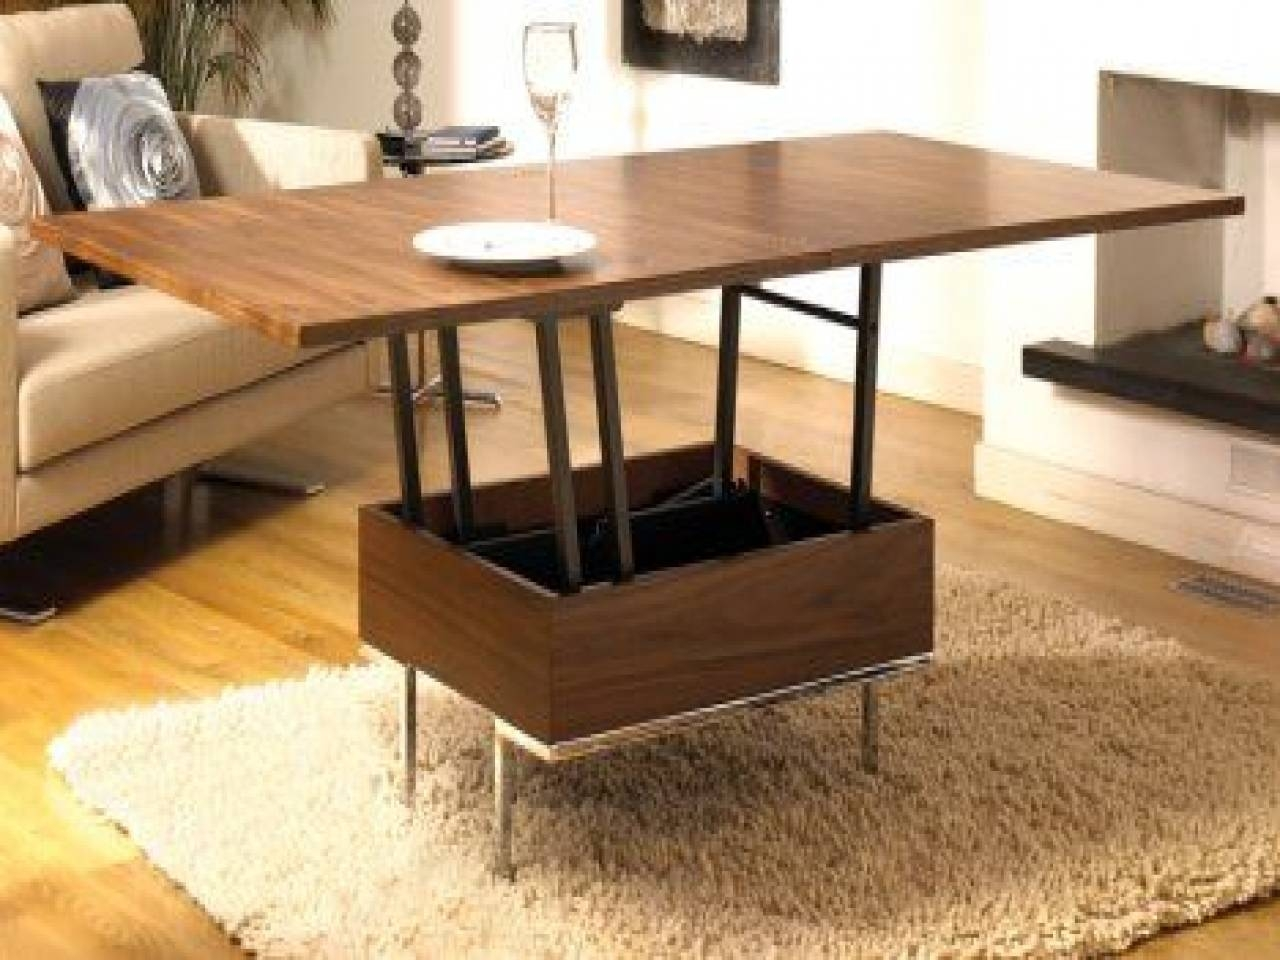 Small Space Coffee Table, Hgtv Outdoor Living Ideas Outdoor Living Regarding Coffee Table Dining Table (View 14 of 30)